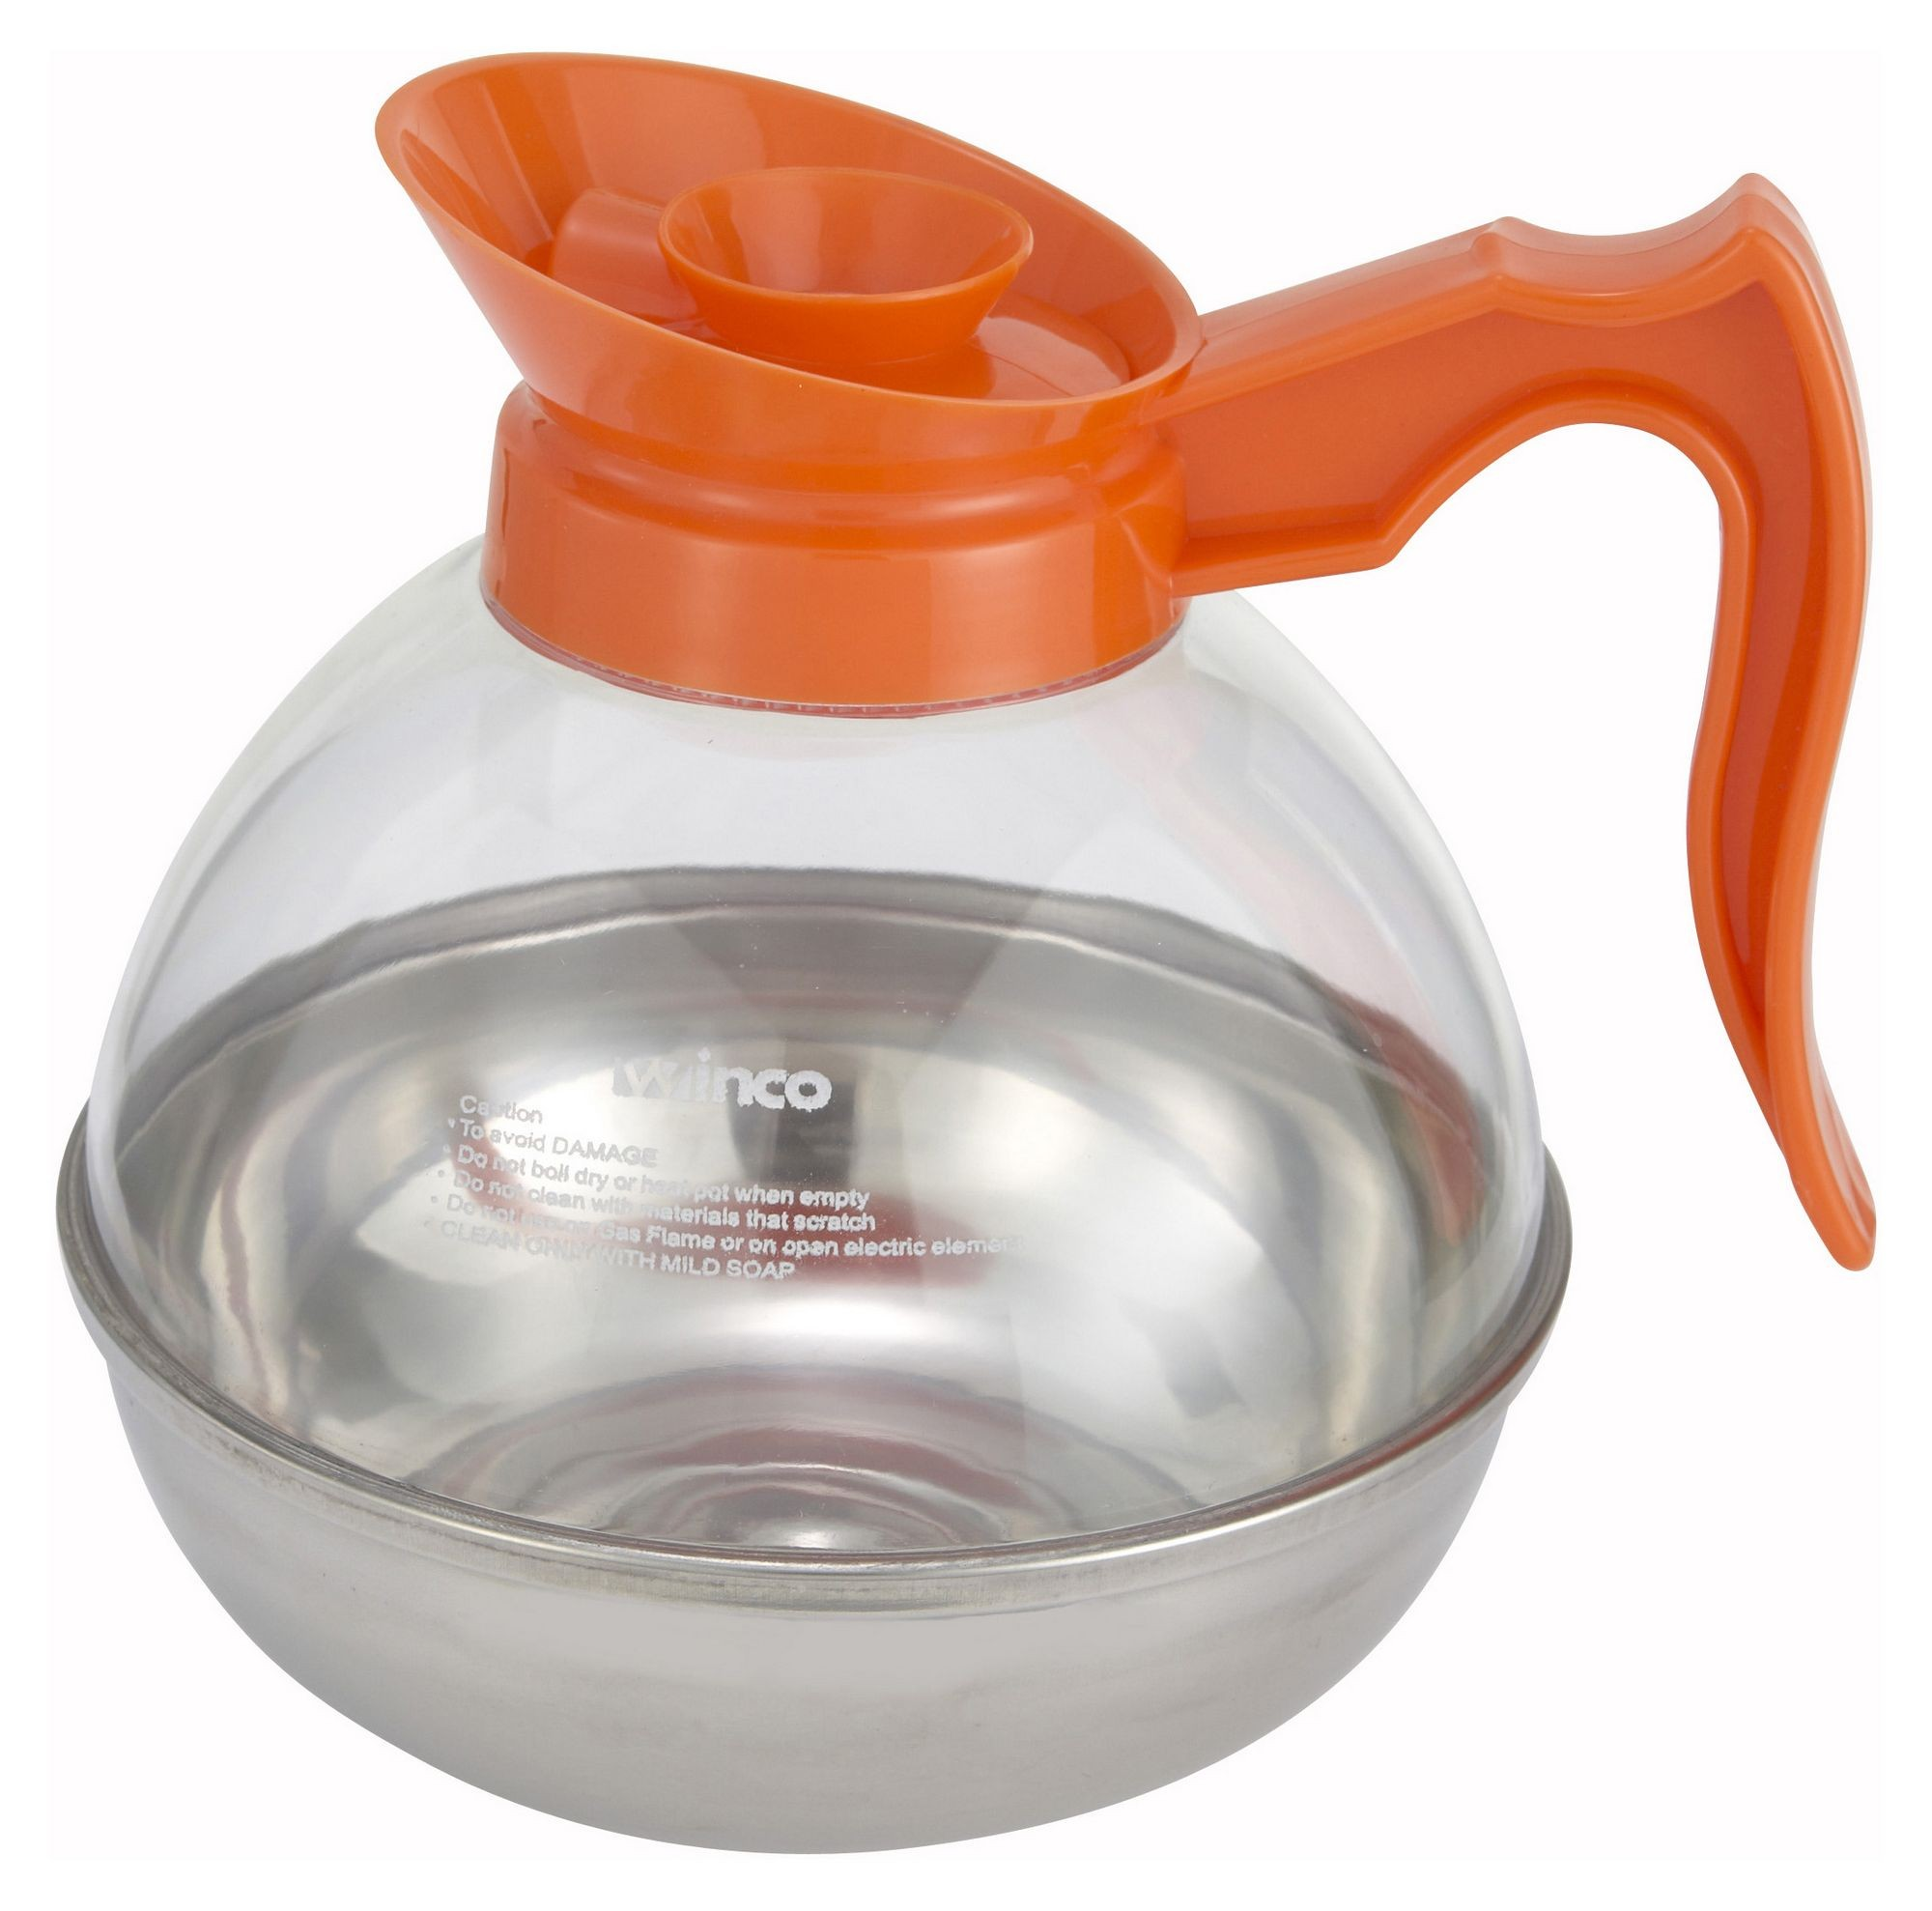 Winco CD-64O Plastic 64 oz. Decaf Coffee Decanter with Stainless Steel Base